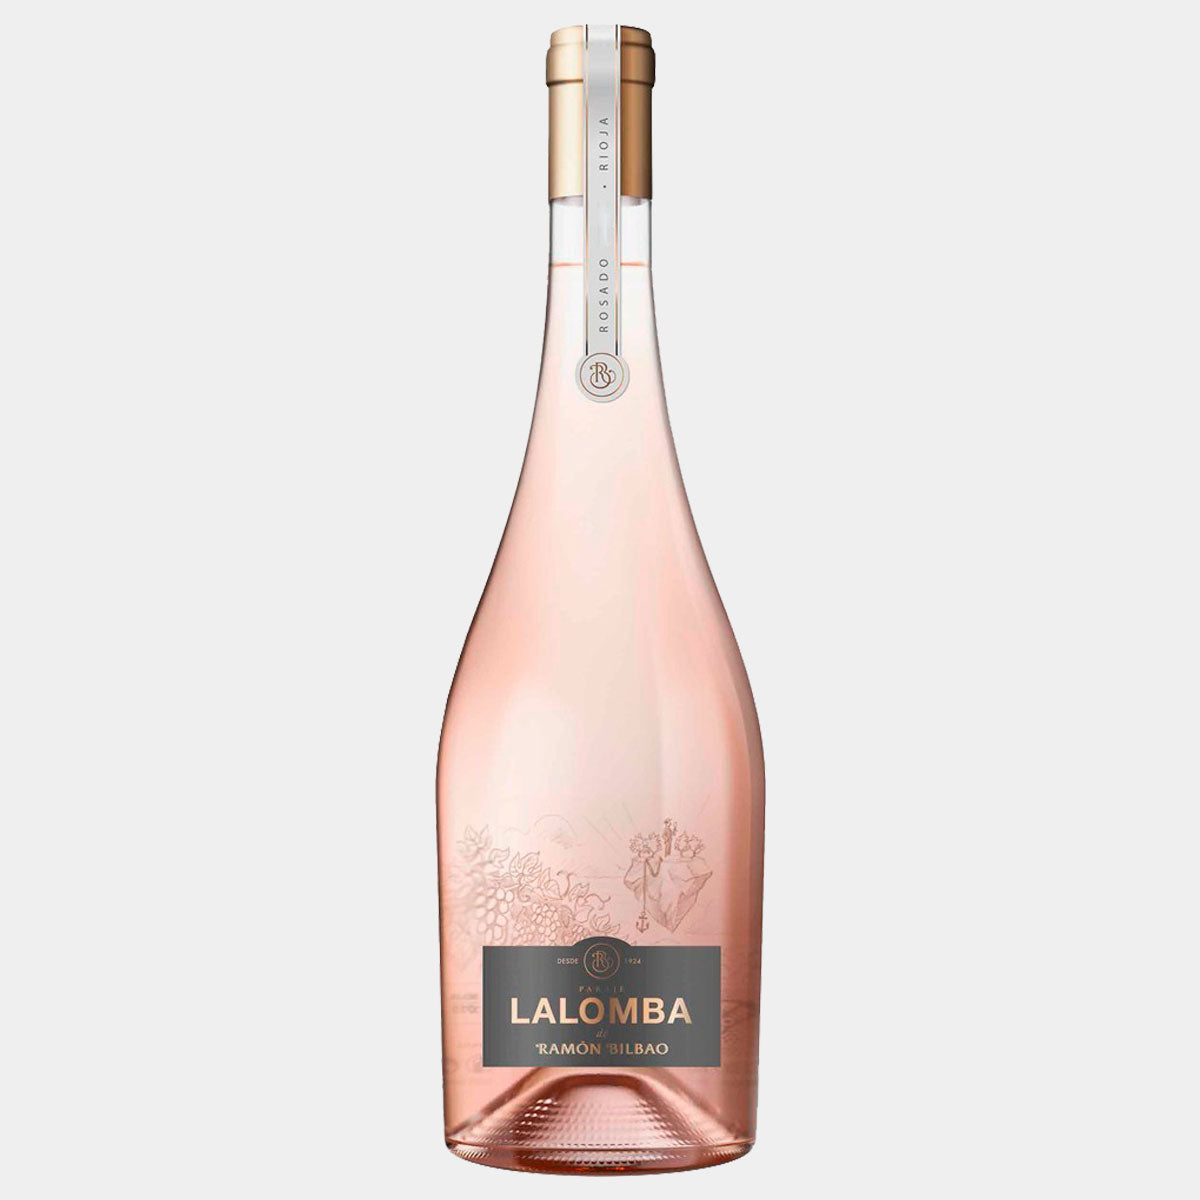 Lalomba Rosado Ramon Bilbao - Wines and Copas Barcelona